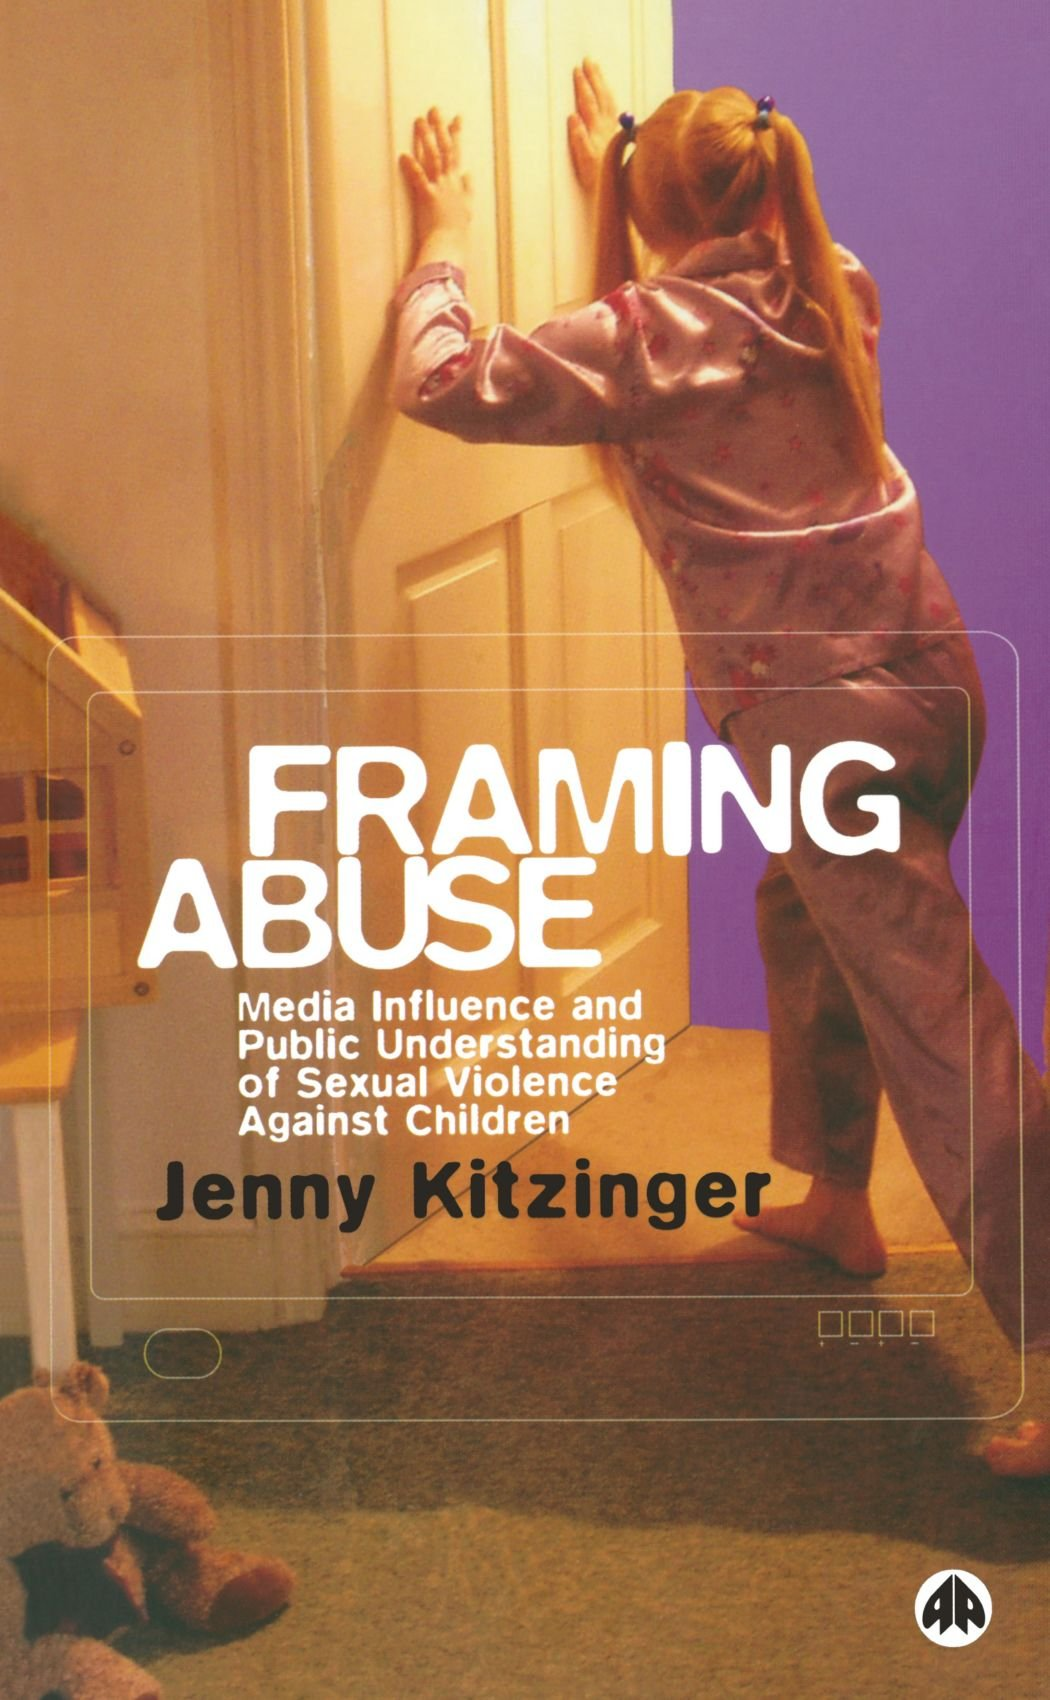 Framing Abuse: Media Influence and Public Understanding of Sexual Violence Against Children PDF